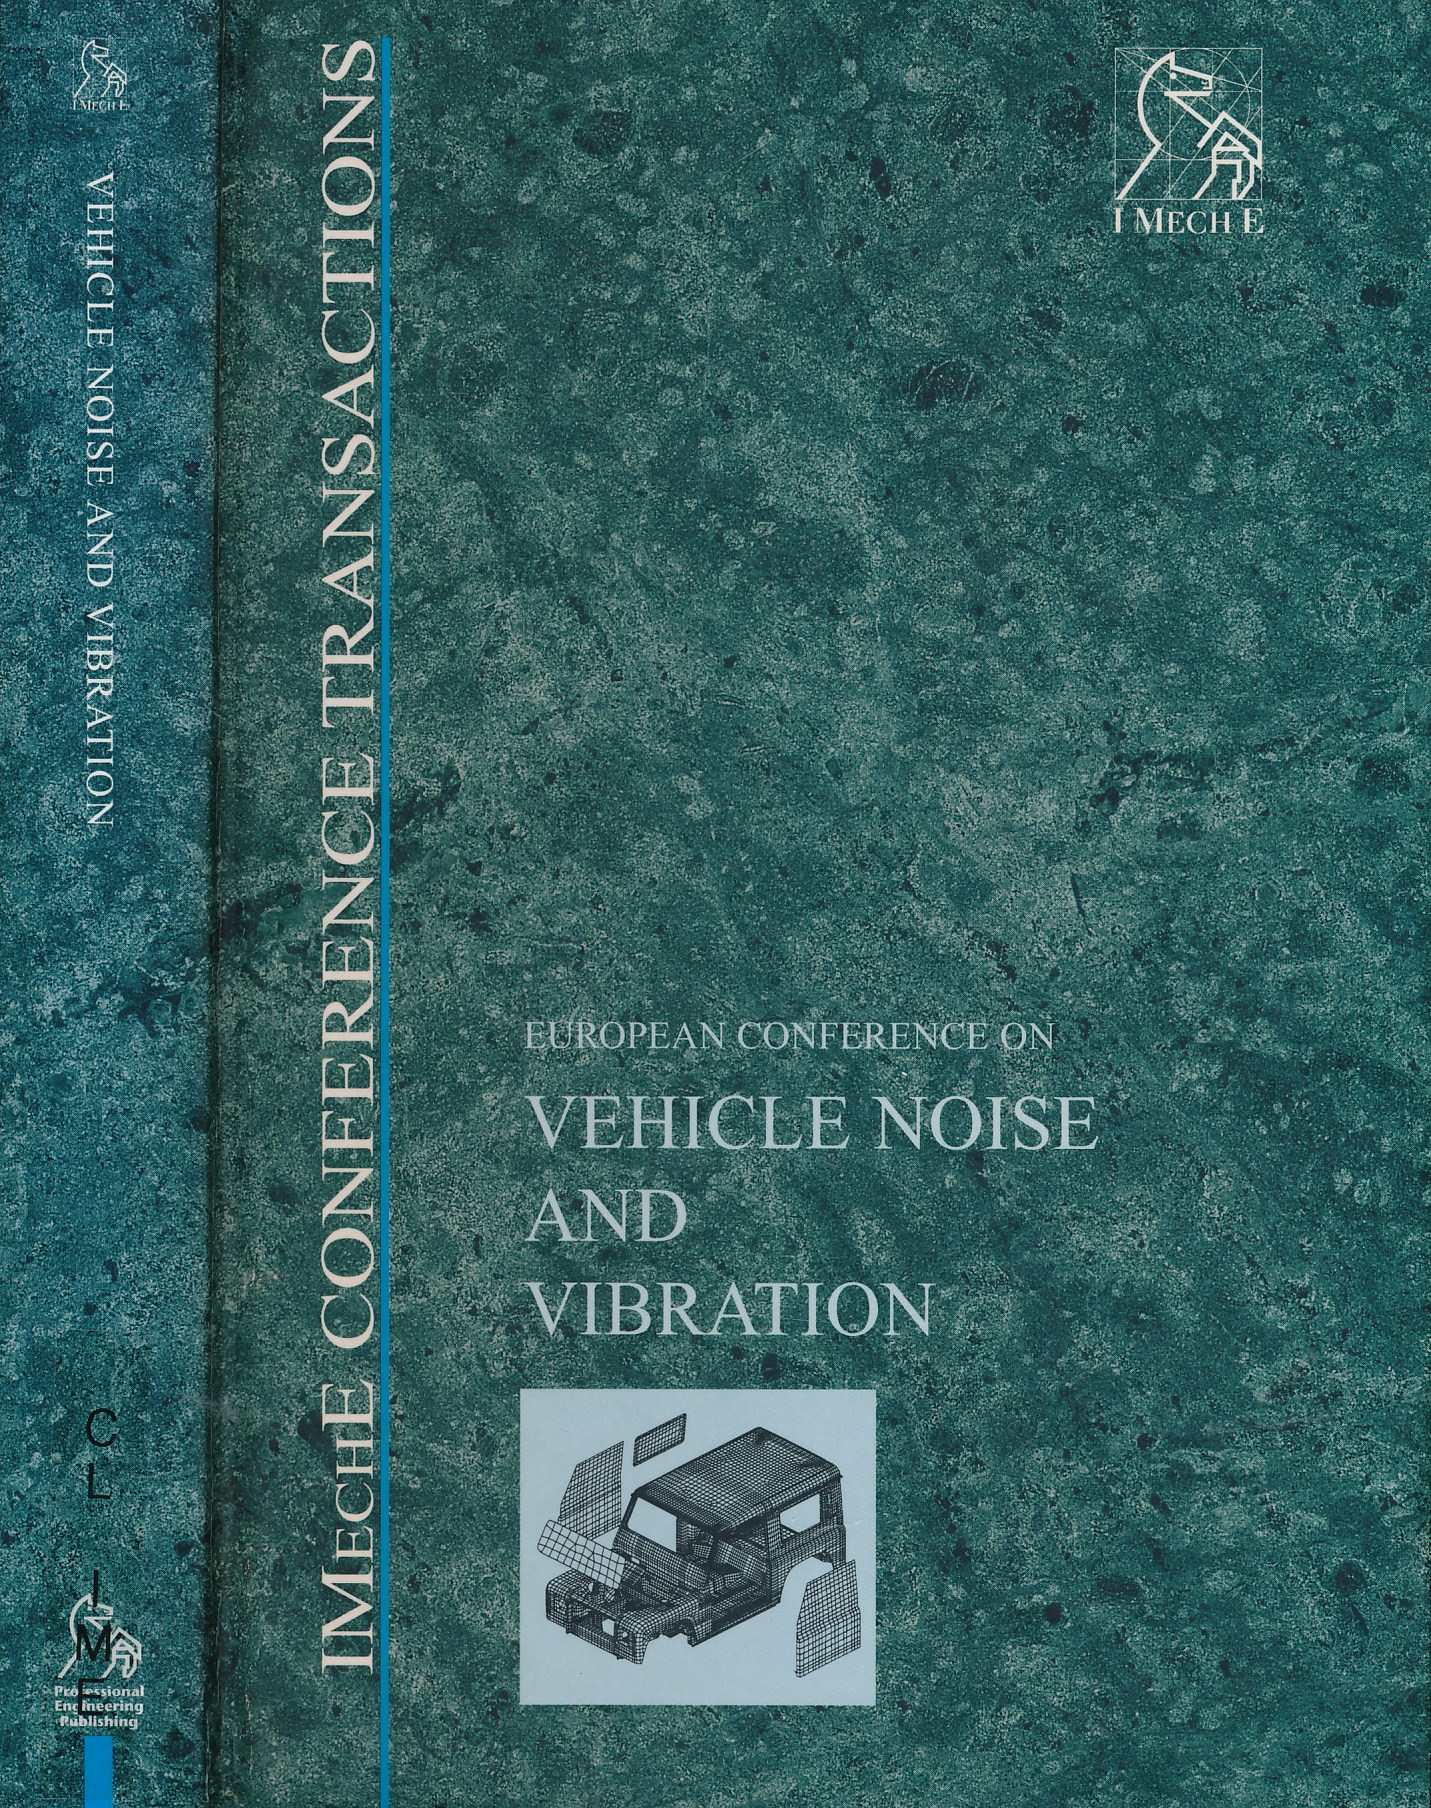 EDITOR - European Conference on Vehicle Noise and Vibration 12-13 May 1988. [Imeche Conference Transactions]